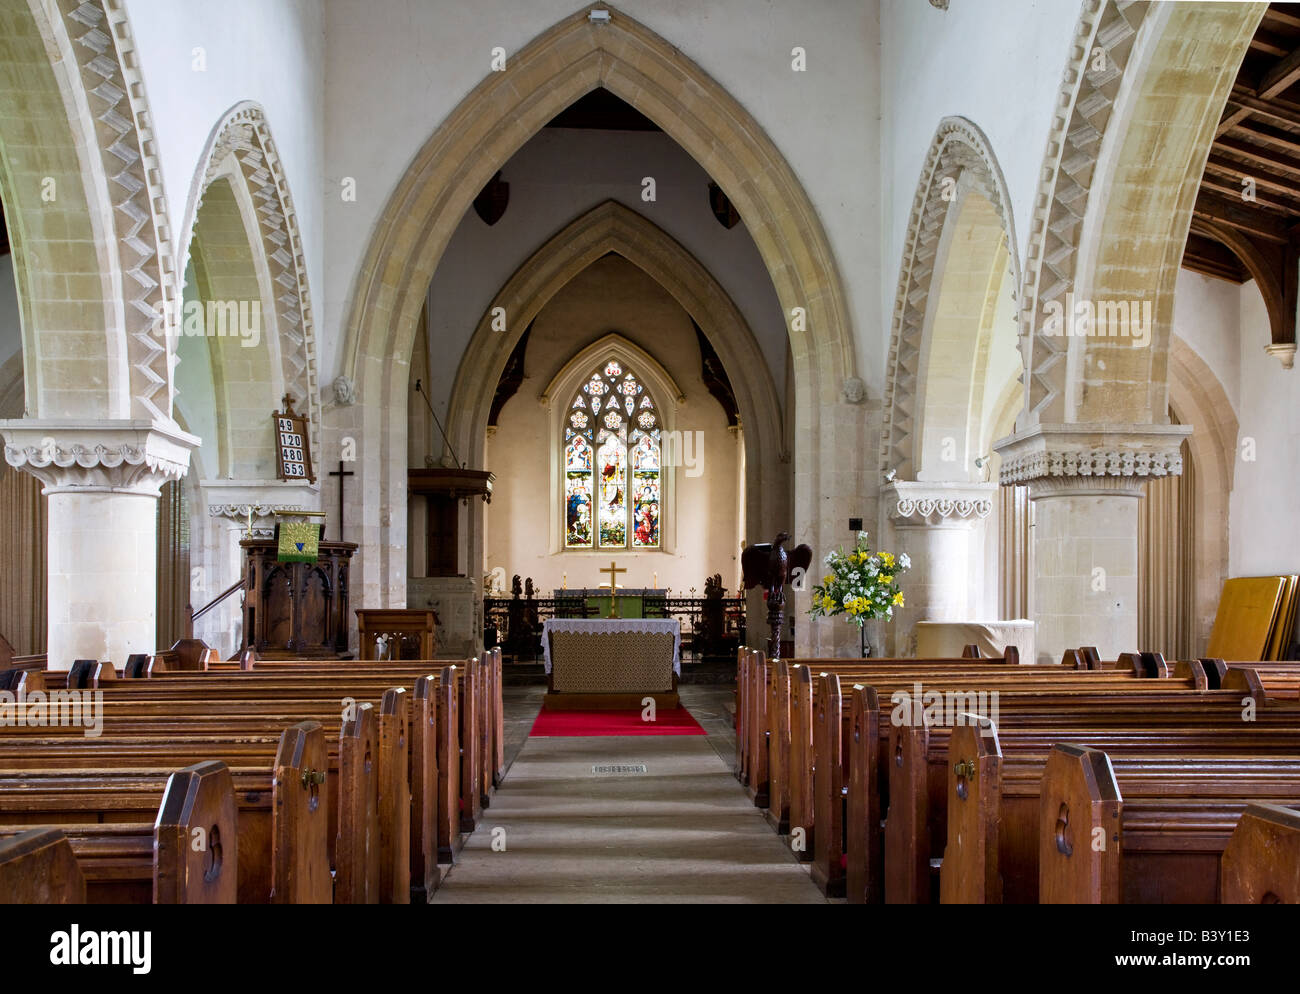 Typical English Norman Village Country Church Interior At StMarys ChurchGreat BedwynWiltshireEnglandGreat BritainUK